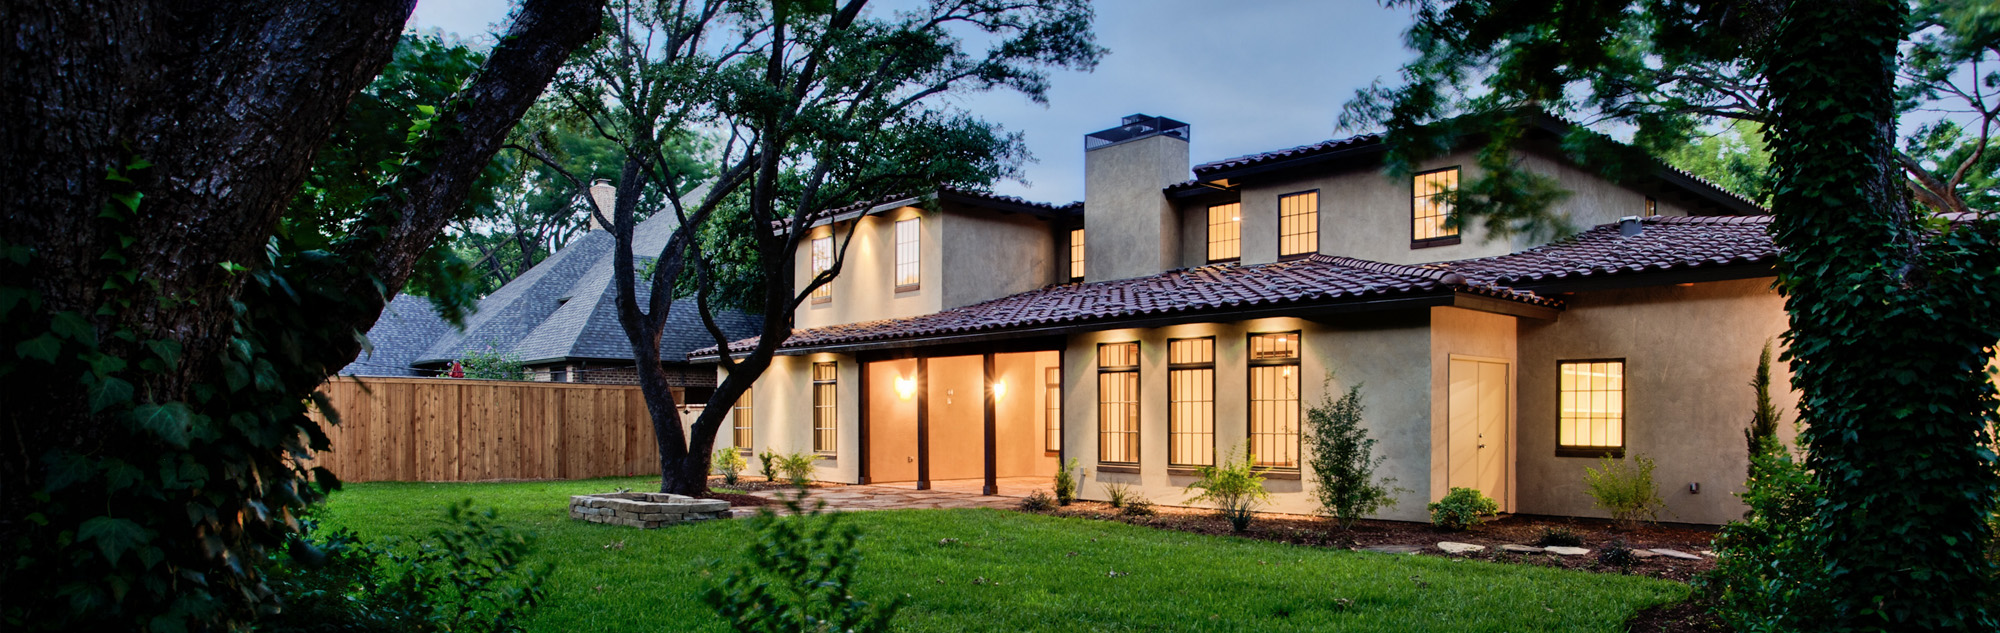 Best-Home-Builders-in-Dallas